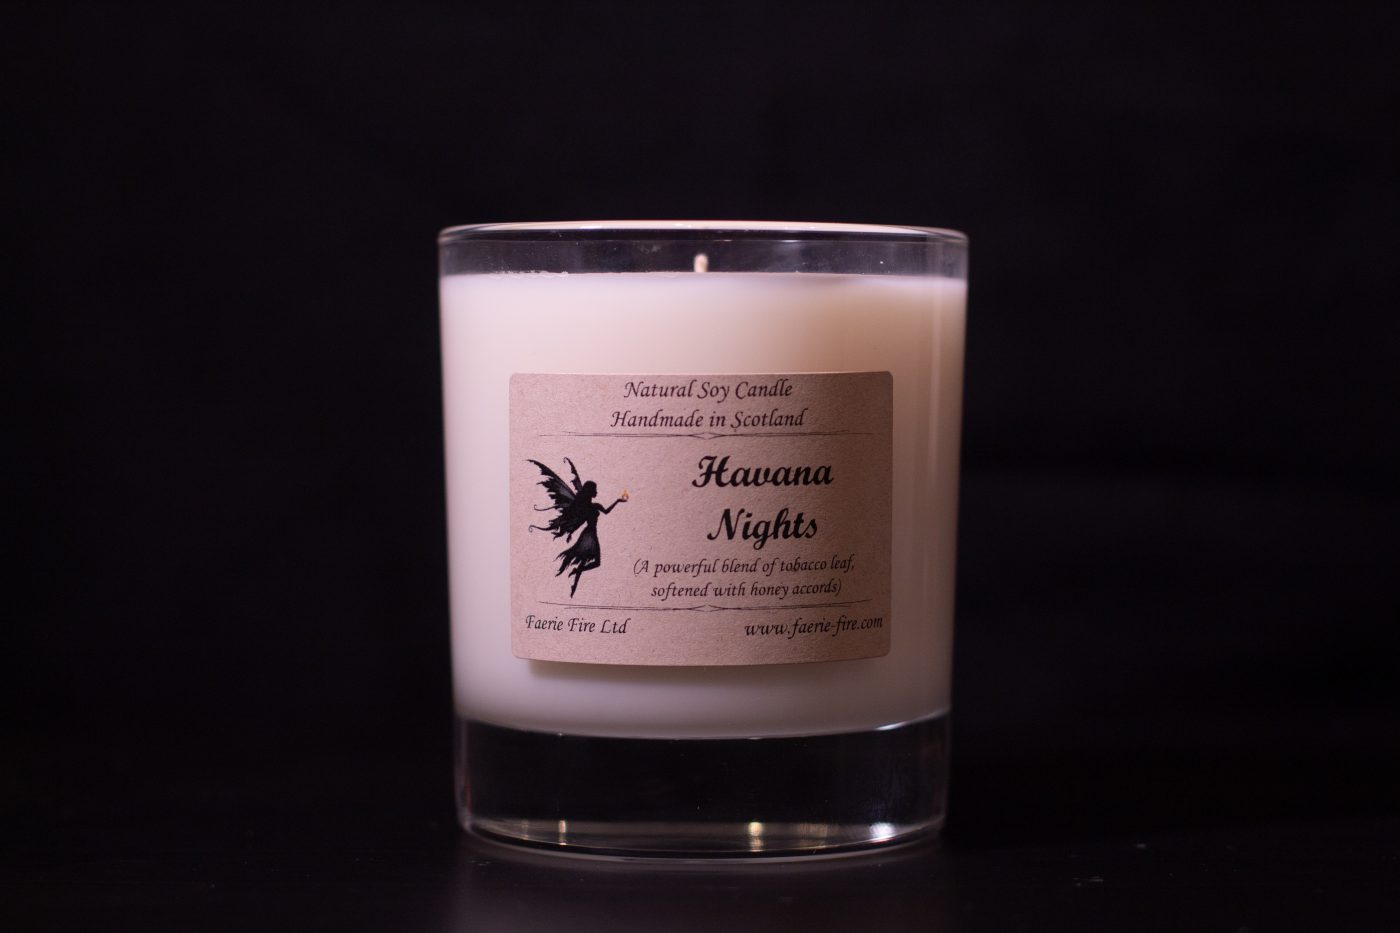 Havana nights honey and tobacco fragranced white jar candle in clear glass against a black background